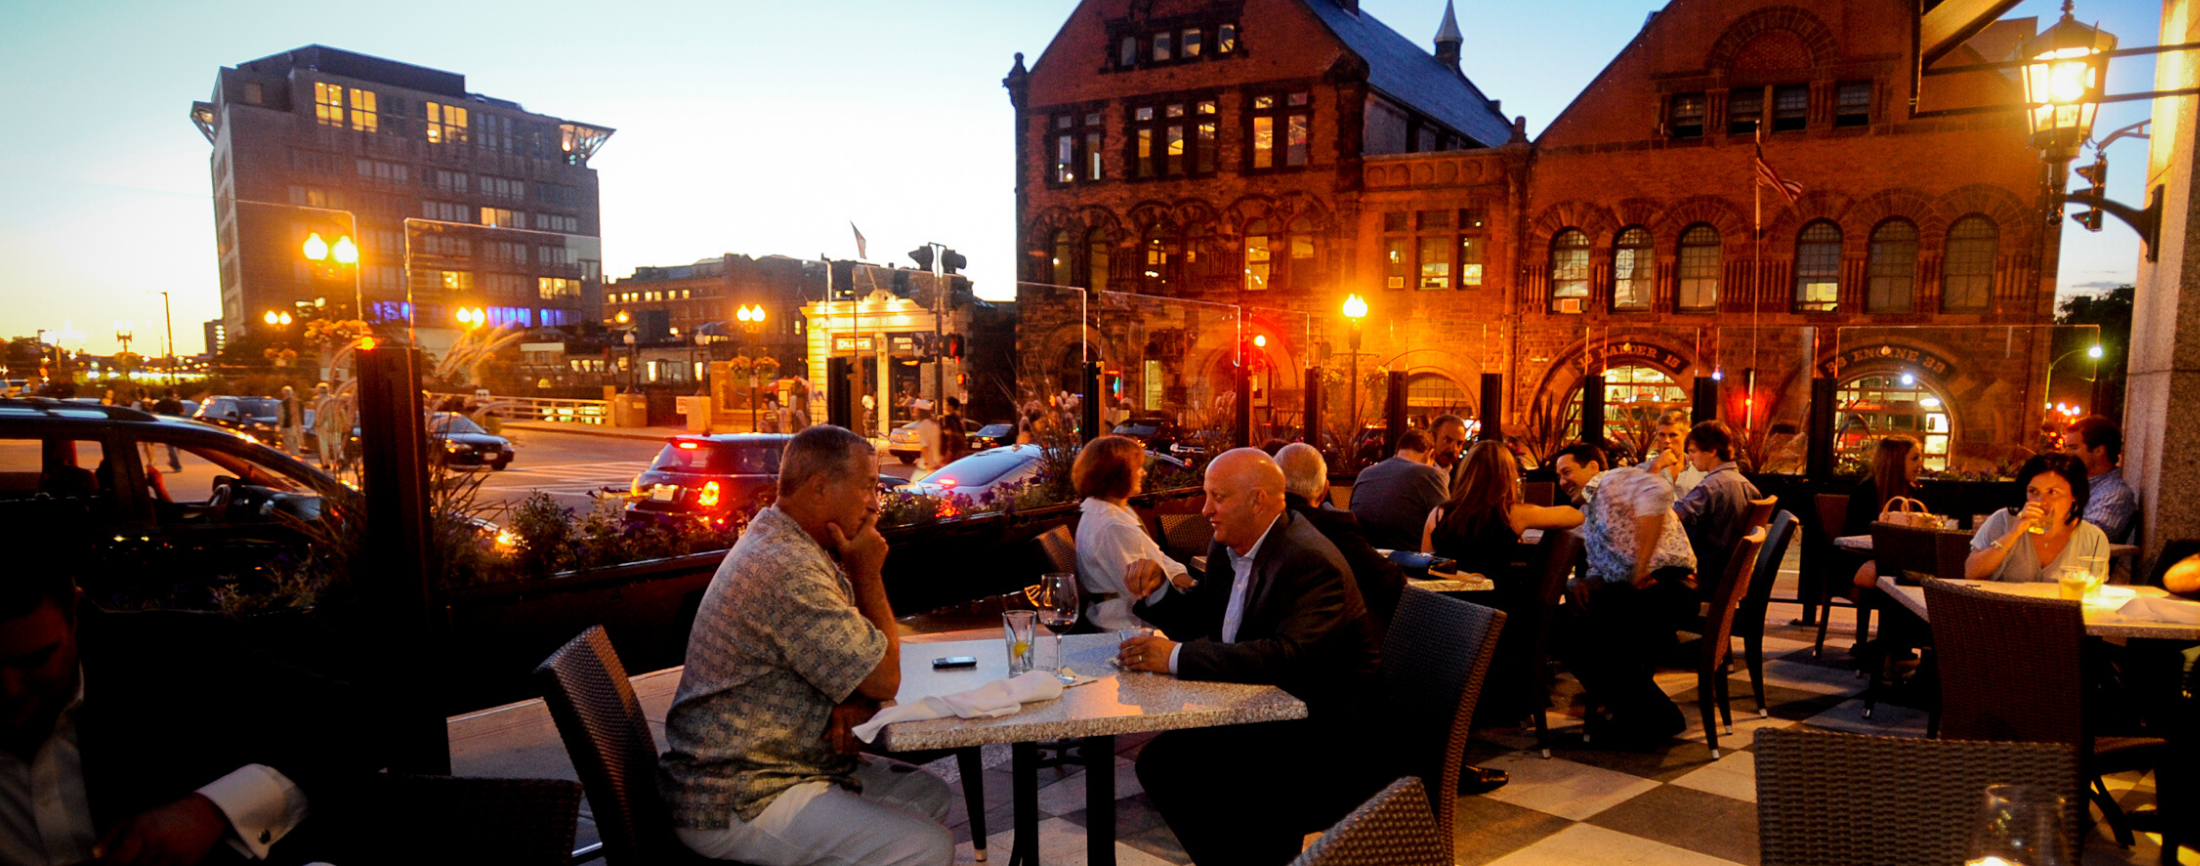 Outdoor dining near the Hynes